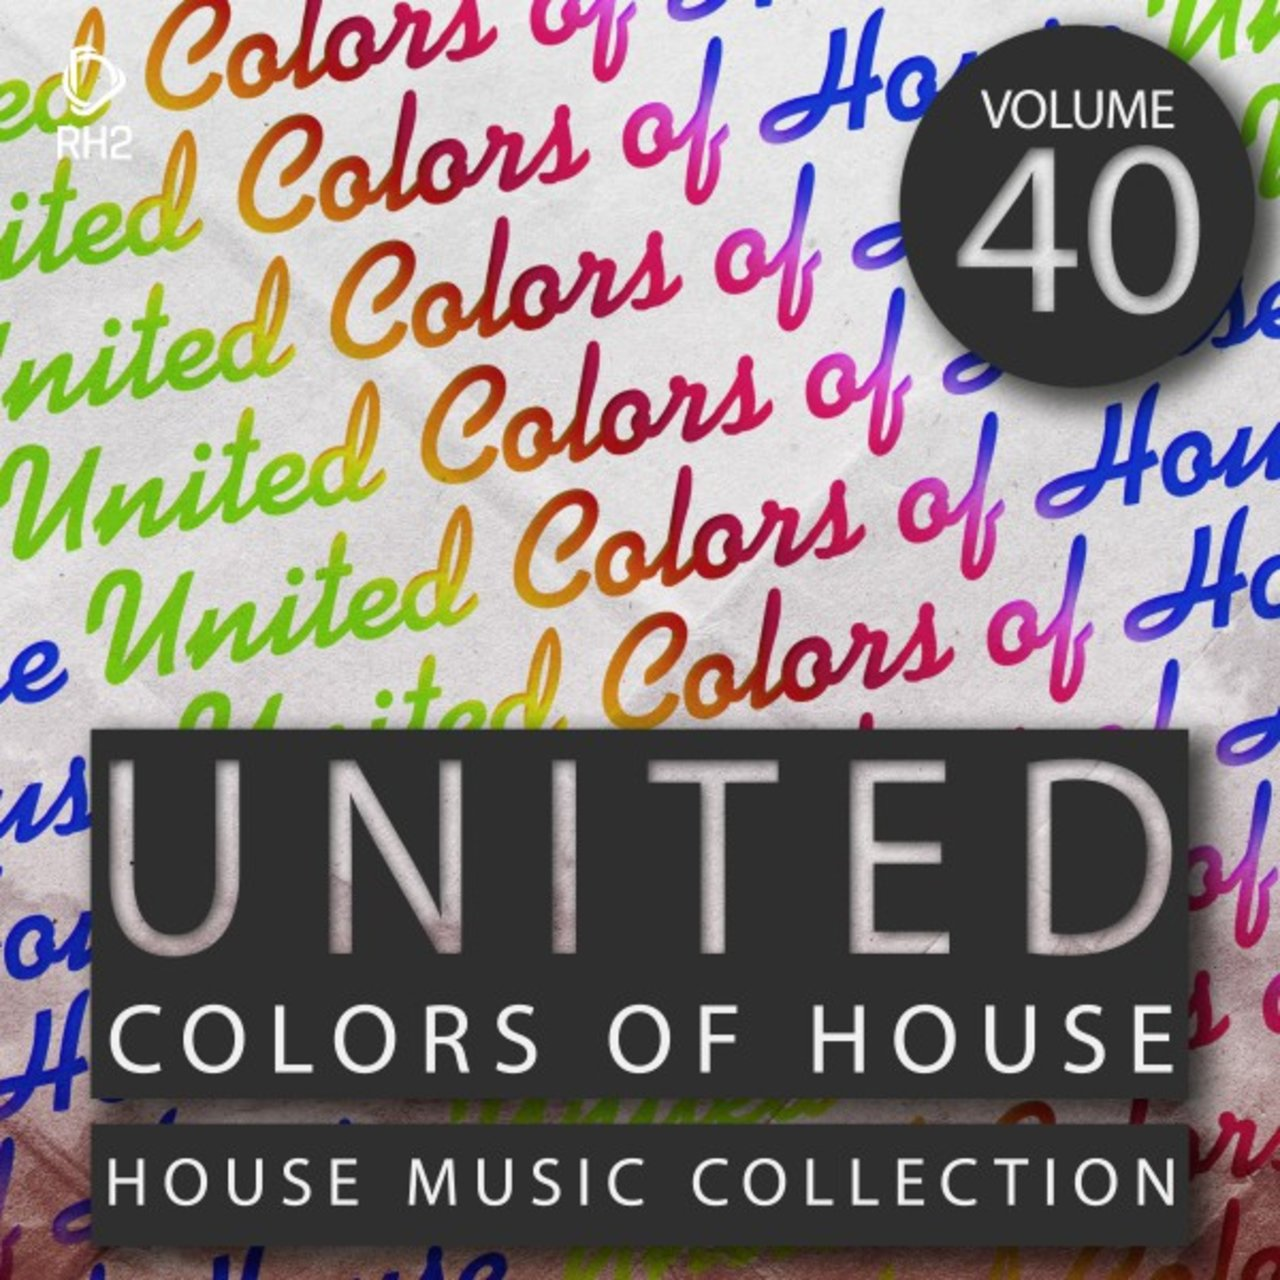 United Colors of House, Vol. 40